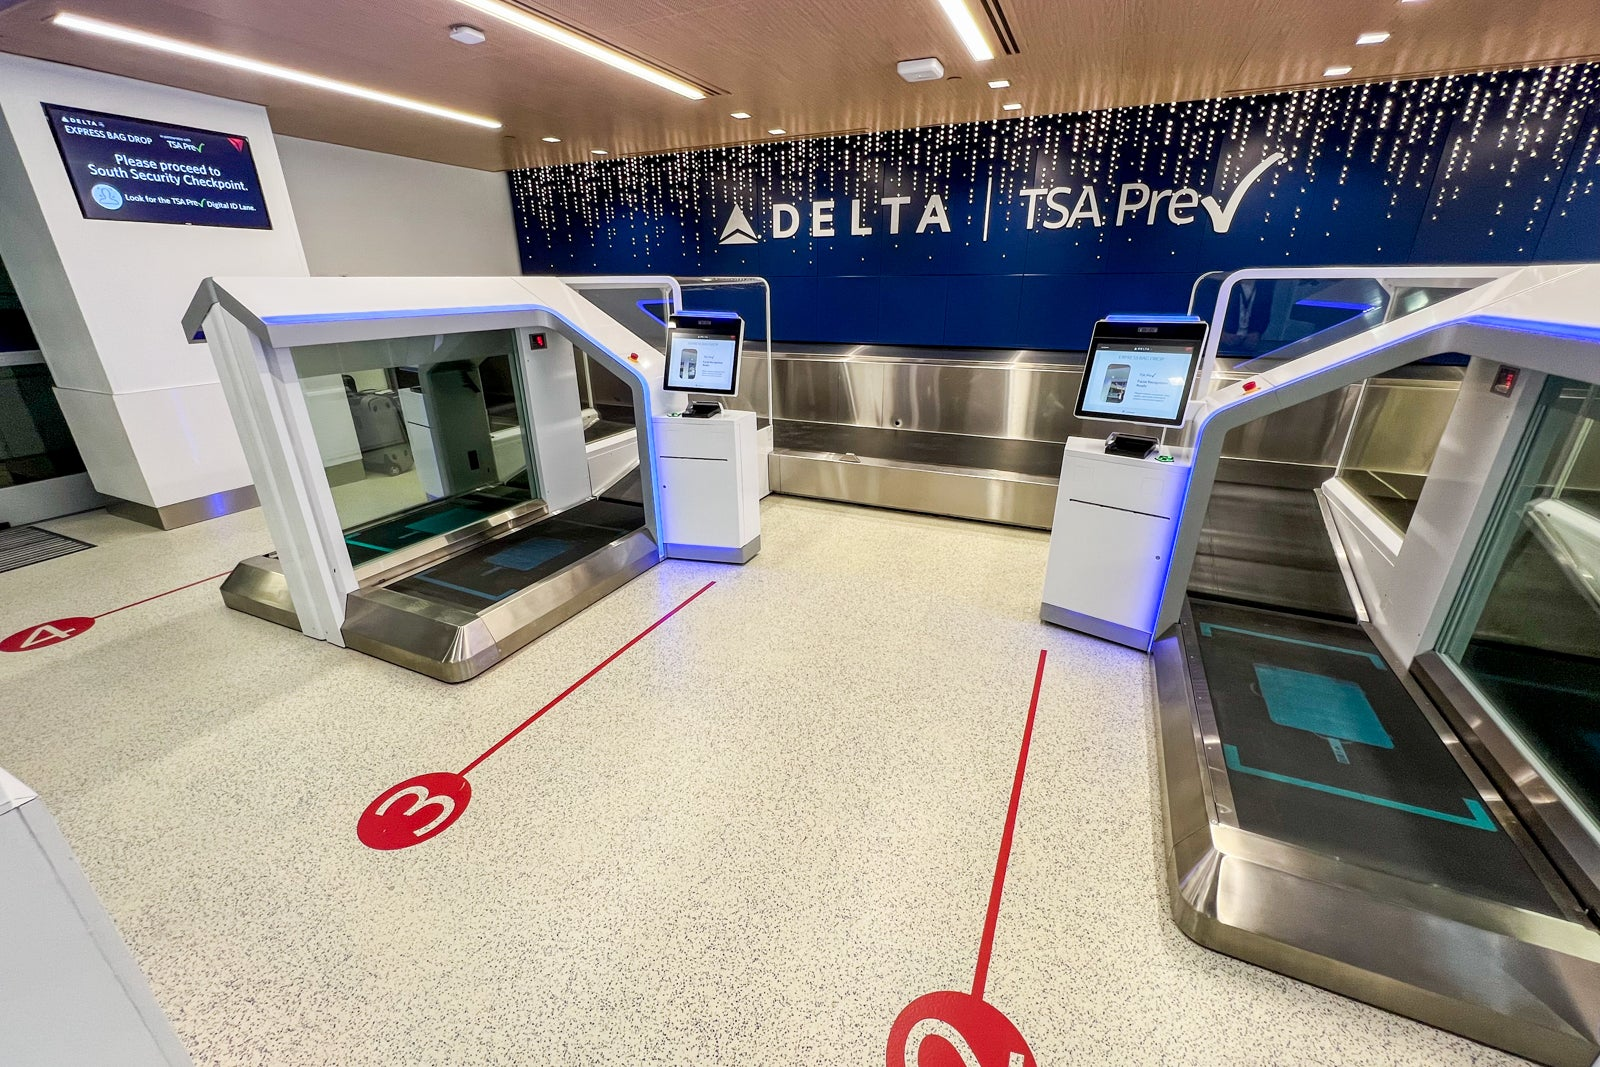 Delta Air Lines hopes to speed passengers through airports with biometrics starting next week